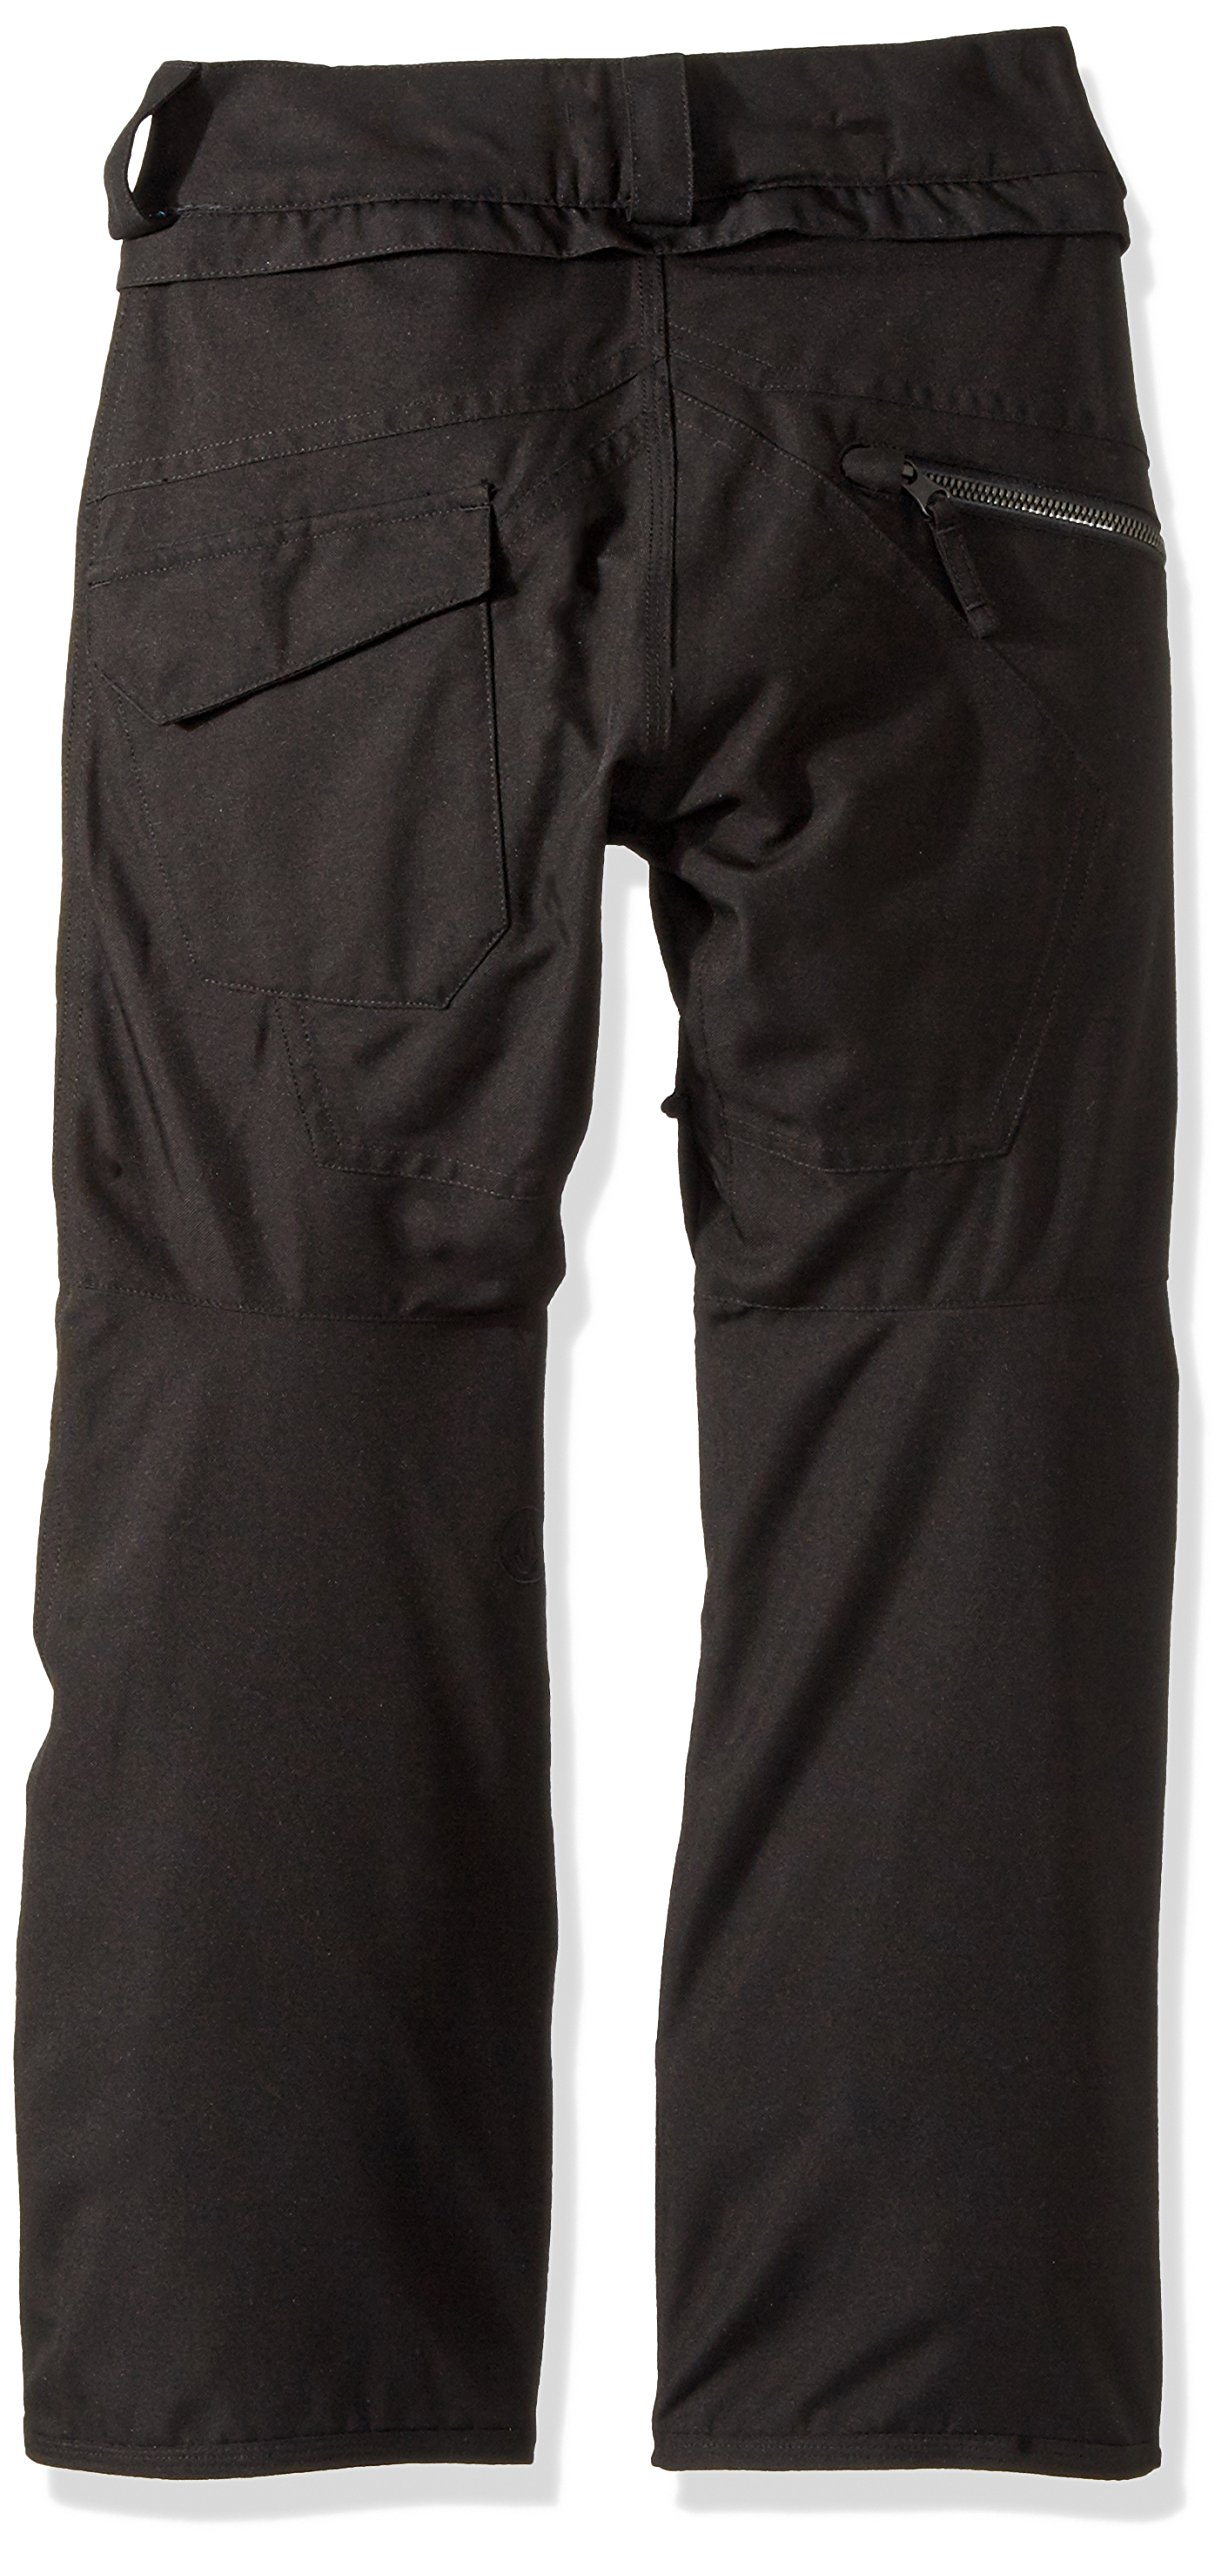 Volcom Boys' Big Datura Pant, Black, XL by Volcom (Image #2)